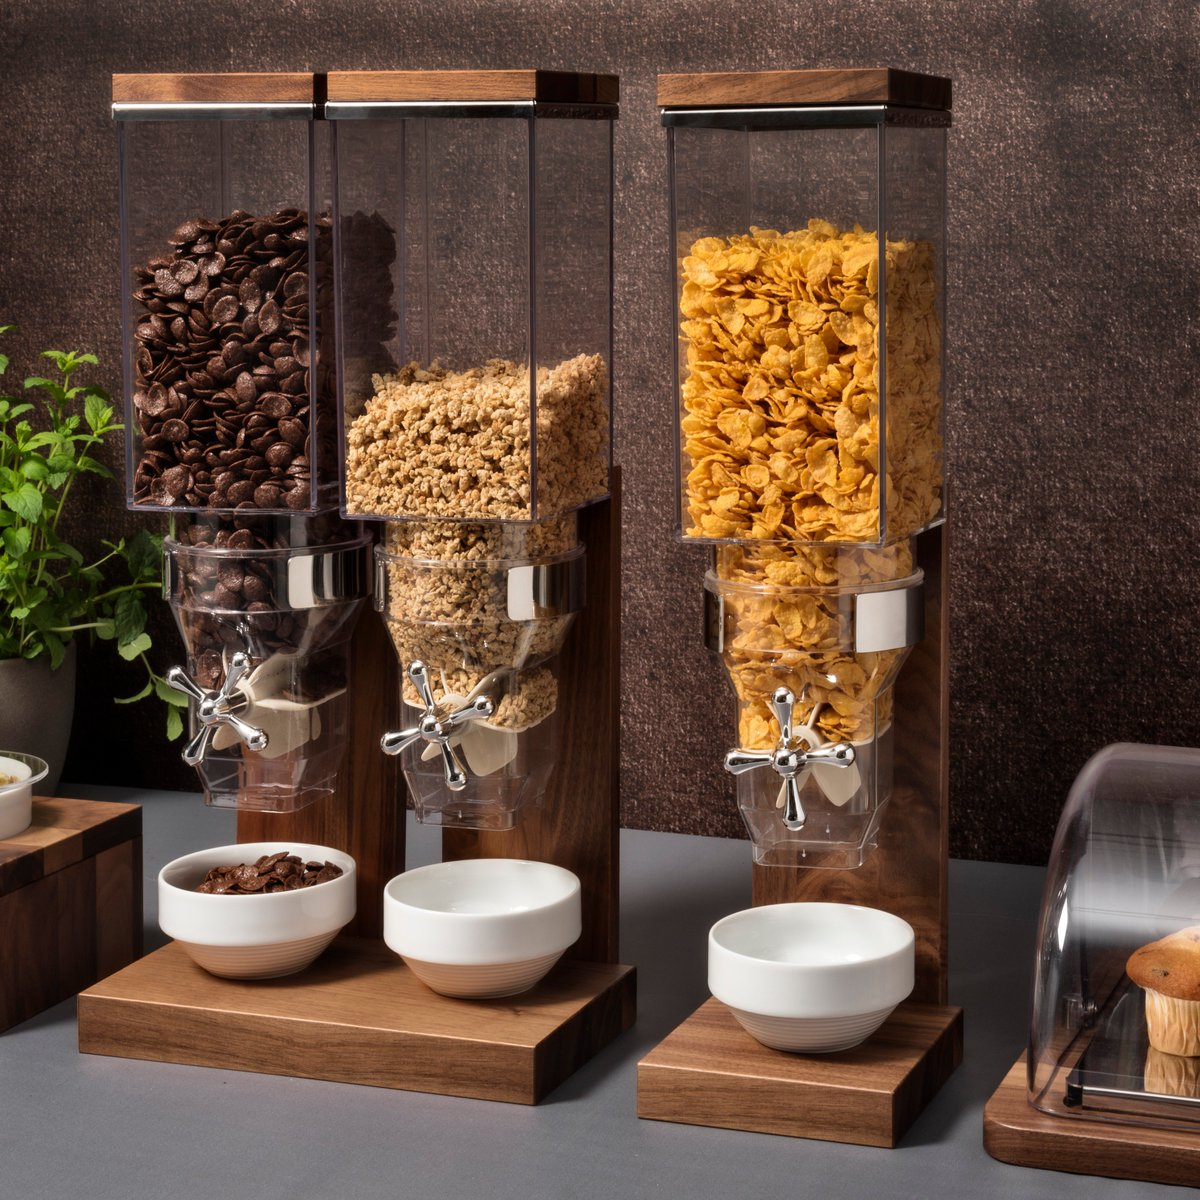 We now carry  zepe buffet  designing and crafting items for the breakfast buffet table, like juice and cereal dispensers, displays, trays and stands, as well as service trolleys. 100% made in Italy using only high quality materials having an excellent price-quality ratio. #zepe